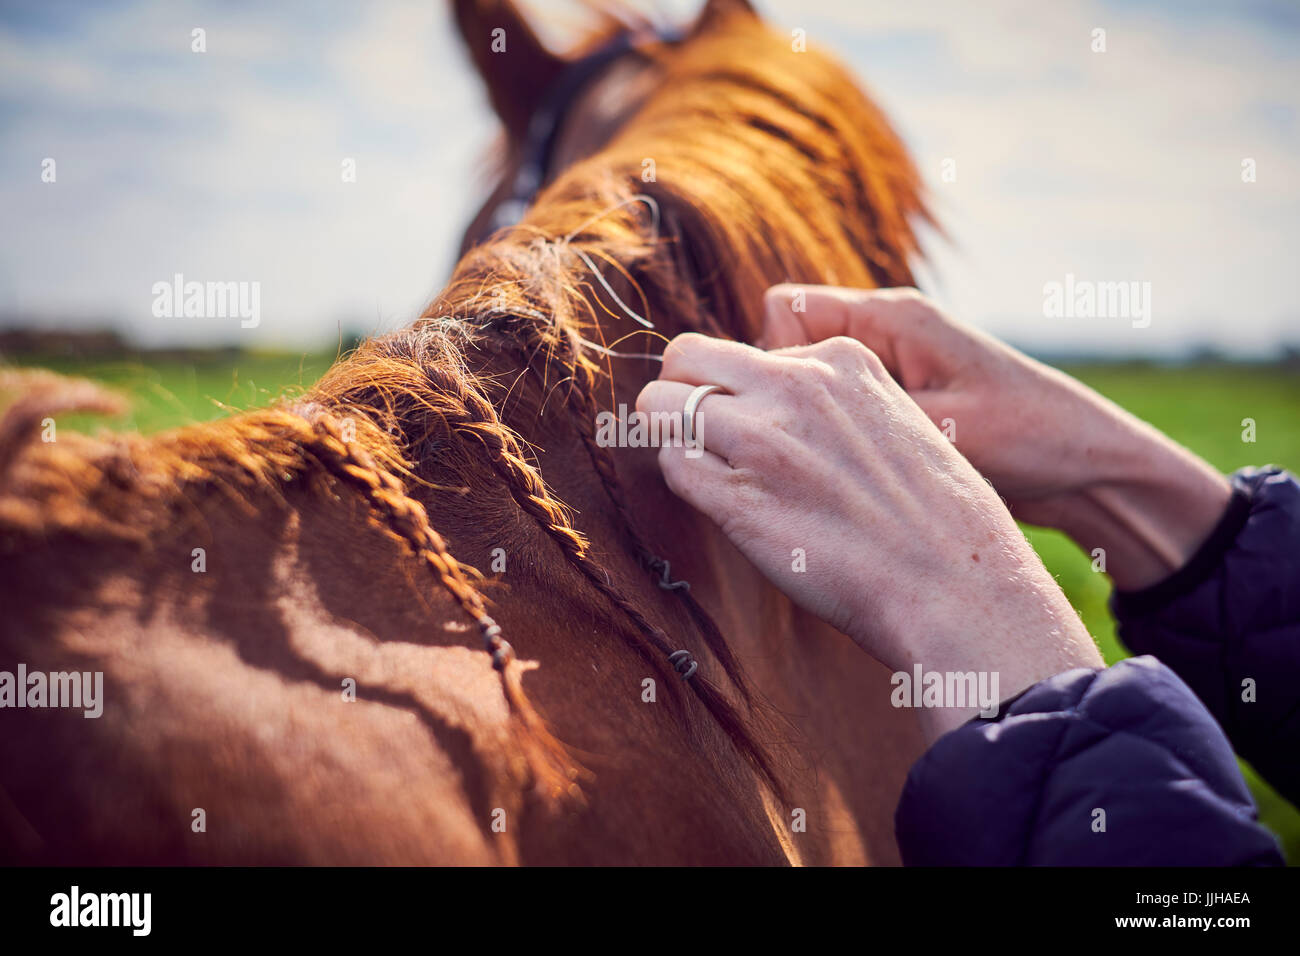 A young woman grooming her horse in a paddock. - Stock Image